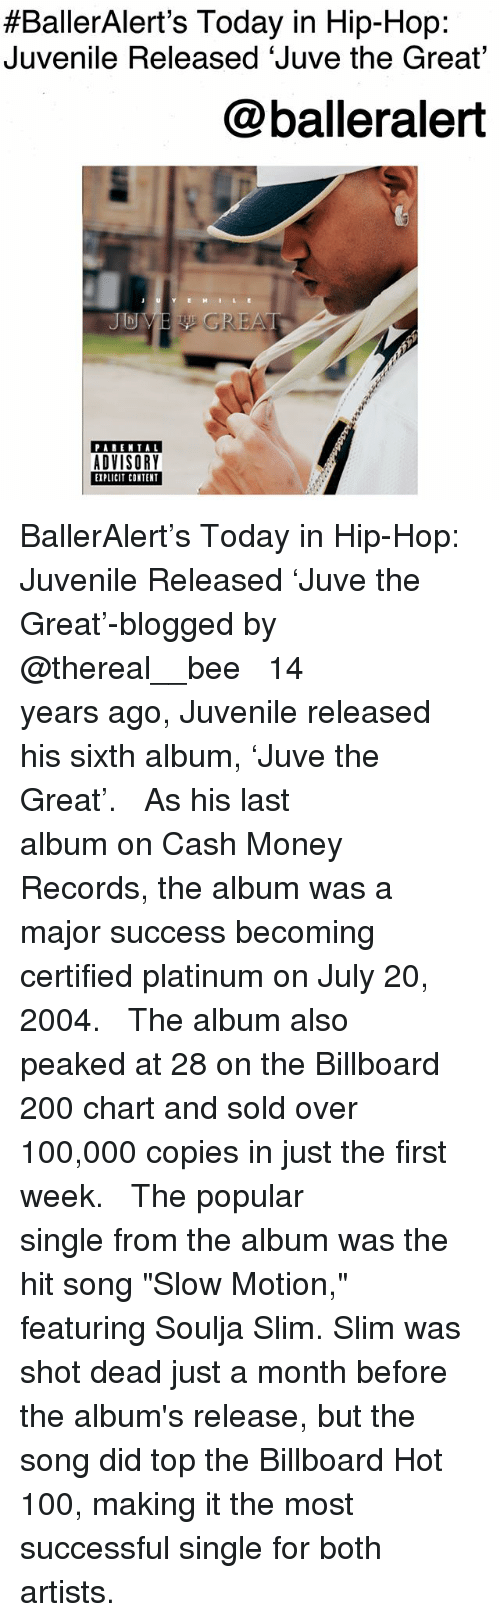 """Anaconda, Bailey Jay, and Billboard:  #BallerAlert's Today in Hip-Hop:  Juvenile Released 'Juve the Great  @balleralert  JD  PARENTAL  ADVISORY  EXPLICIT CONTENT BallerAlert's Today in Hip-Hop: Juvenile Released 'Juve the Great'-blogged by @thereal__bee ⠀⠀⠀⠀⠀⠀⠀⠀⠀ ⠀⠀ 14 years ago, Juvenile released his sixth album, 'Juve the Great'. ⠀⠀⠀⠀⠀⠀⠀⠀⠀ ⠀⠀ As his last album on Cash Money Records, the album was a major success becoming certified platinum on July 20, 2004. ⠀⠀⠀⠀⠀⠀⠀⠀⠀ ⠀⠀ The album also peaked at 28 on the Billboard 200 chart and sold over 100,000 copies in just the first week. ⠀⠀⠀⠀⠀⠀⠀⠀⠀ ⠀⠀ The popular single from the album was the hit song """"Slow Motion,"""" featuring Soulja Slim. Slim was shot dead just a month before the album's release, but the song did top the Billboard Hot 100, making it the most successful single for both artists."""